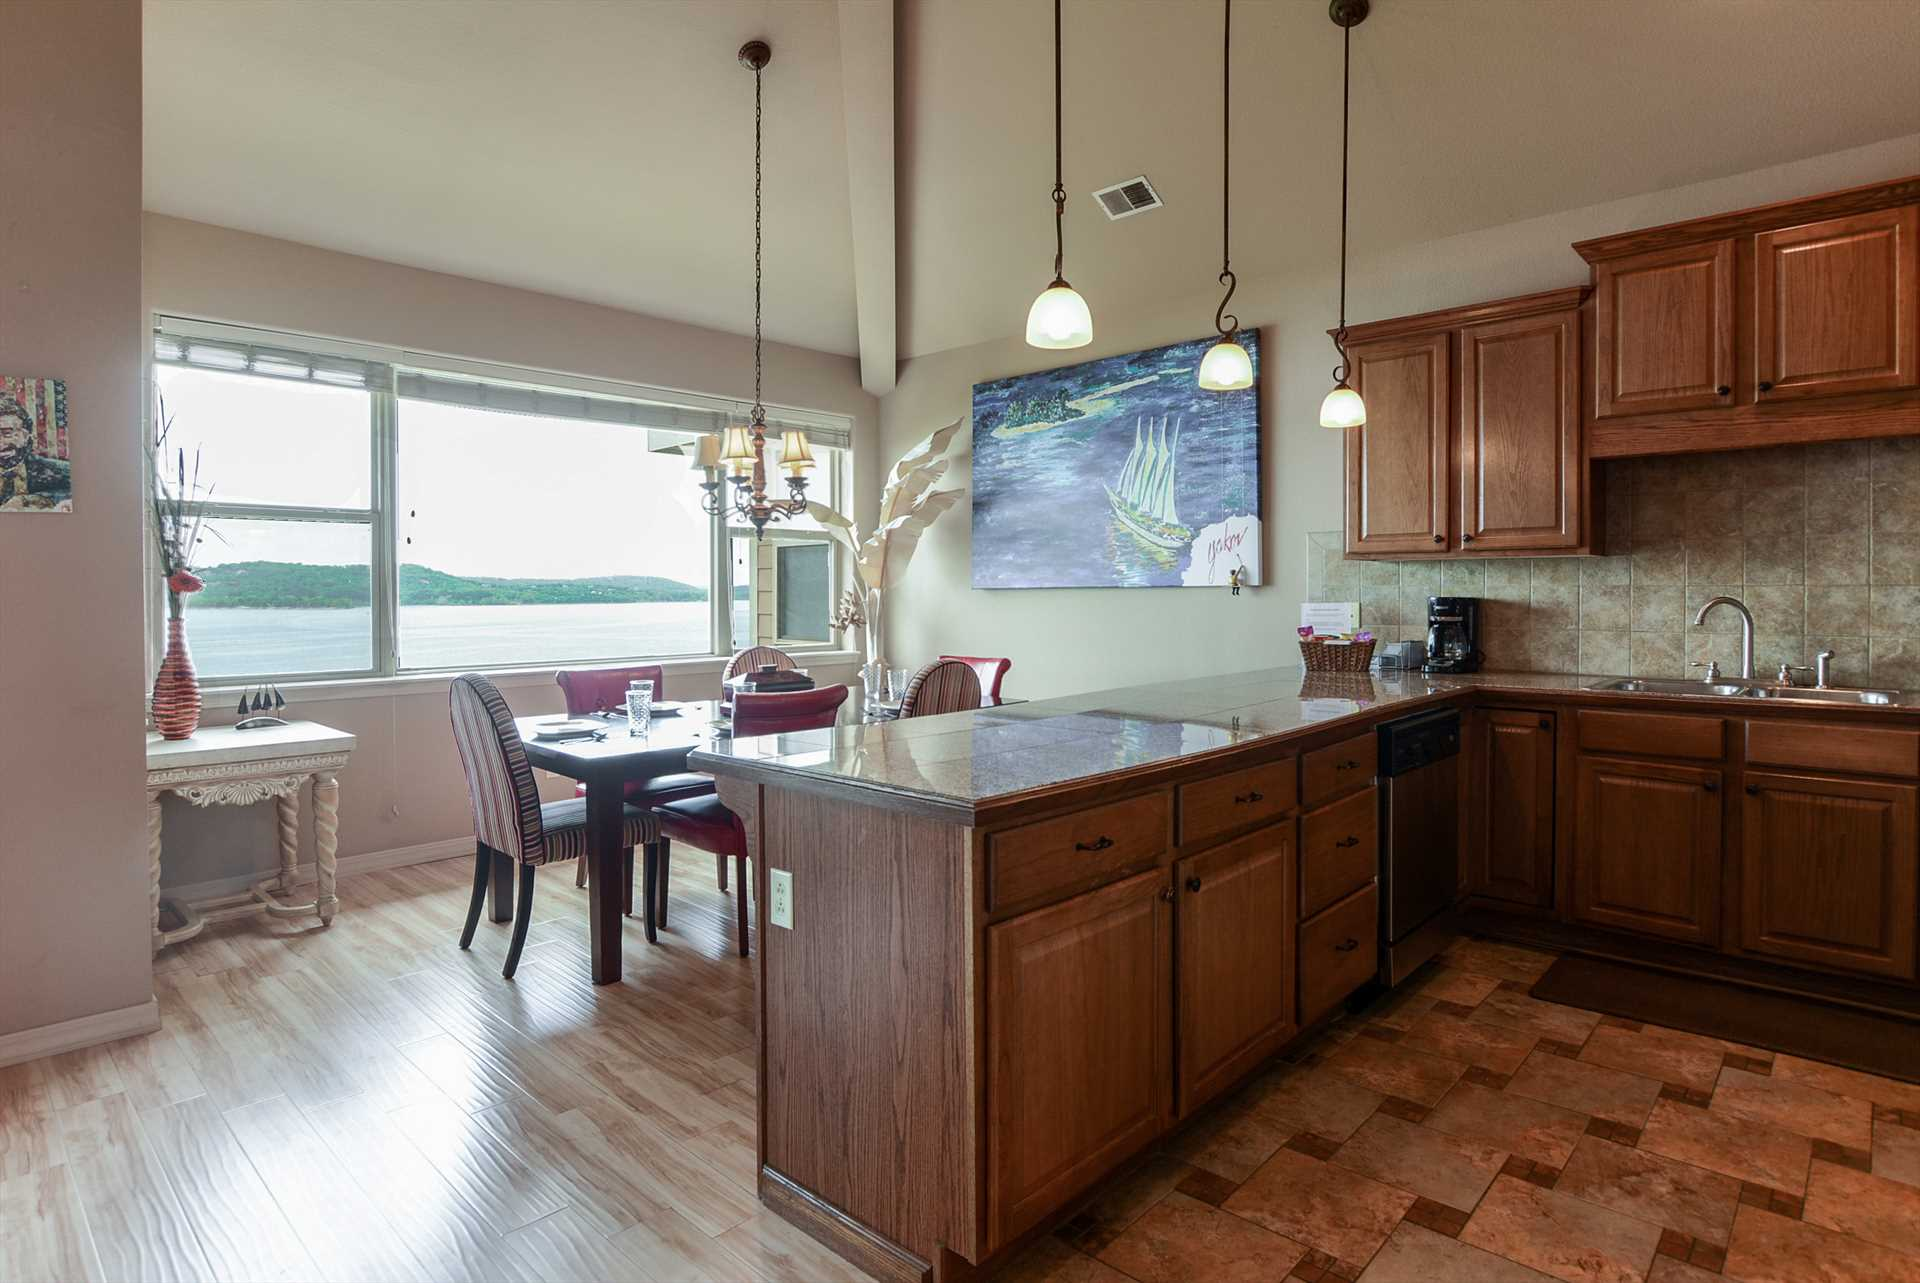 The fully-equipped kitchen is adjacent to the living area.